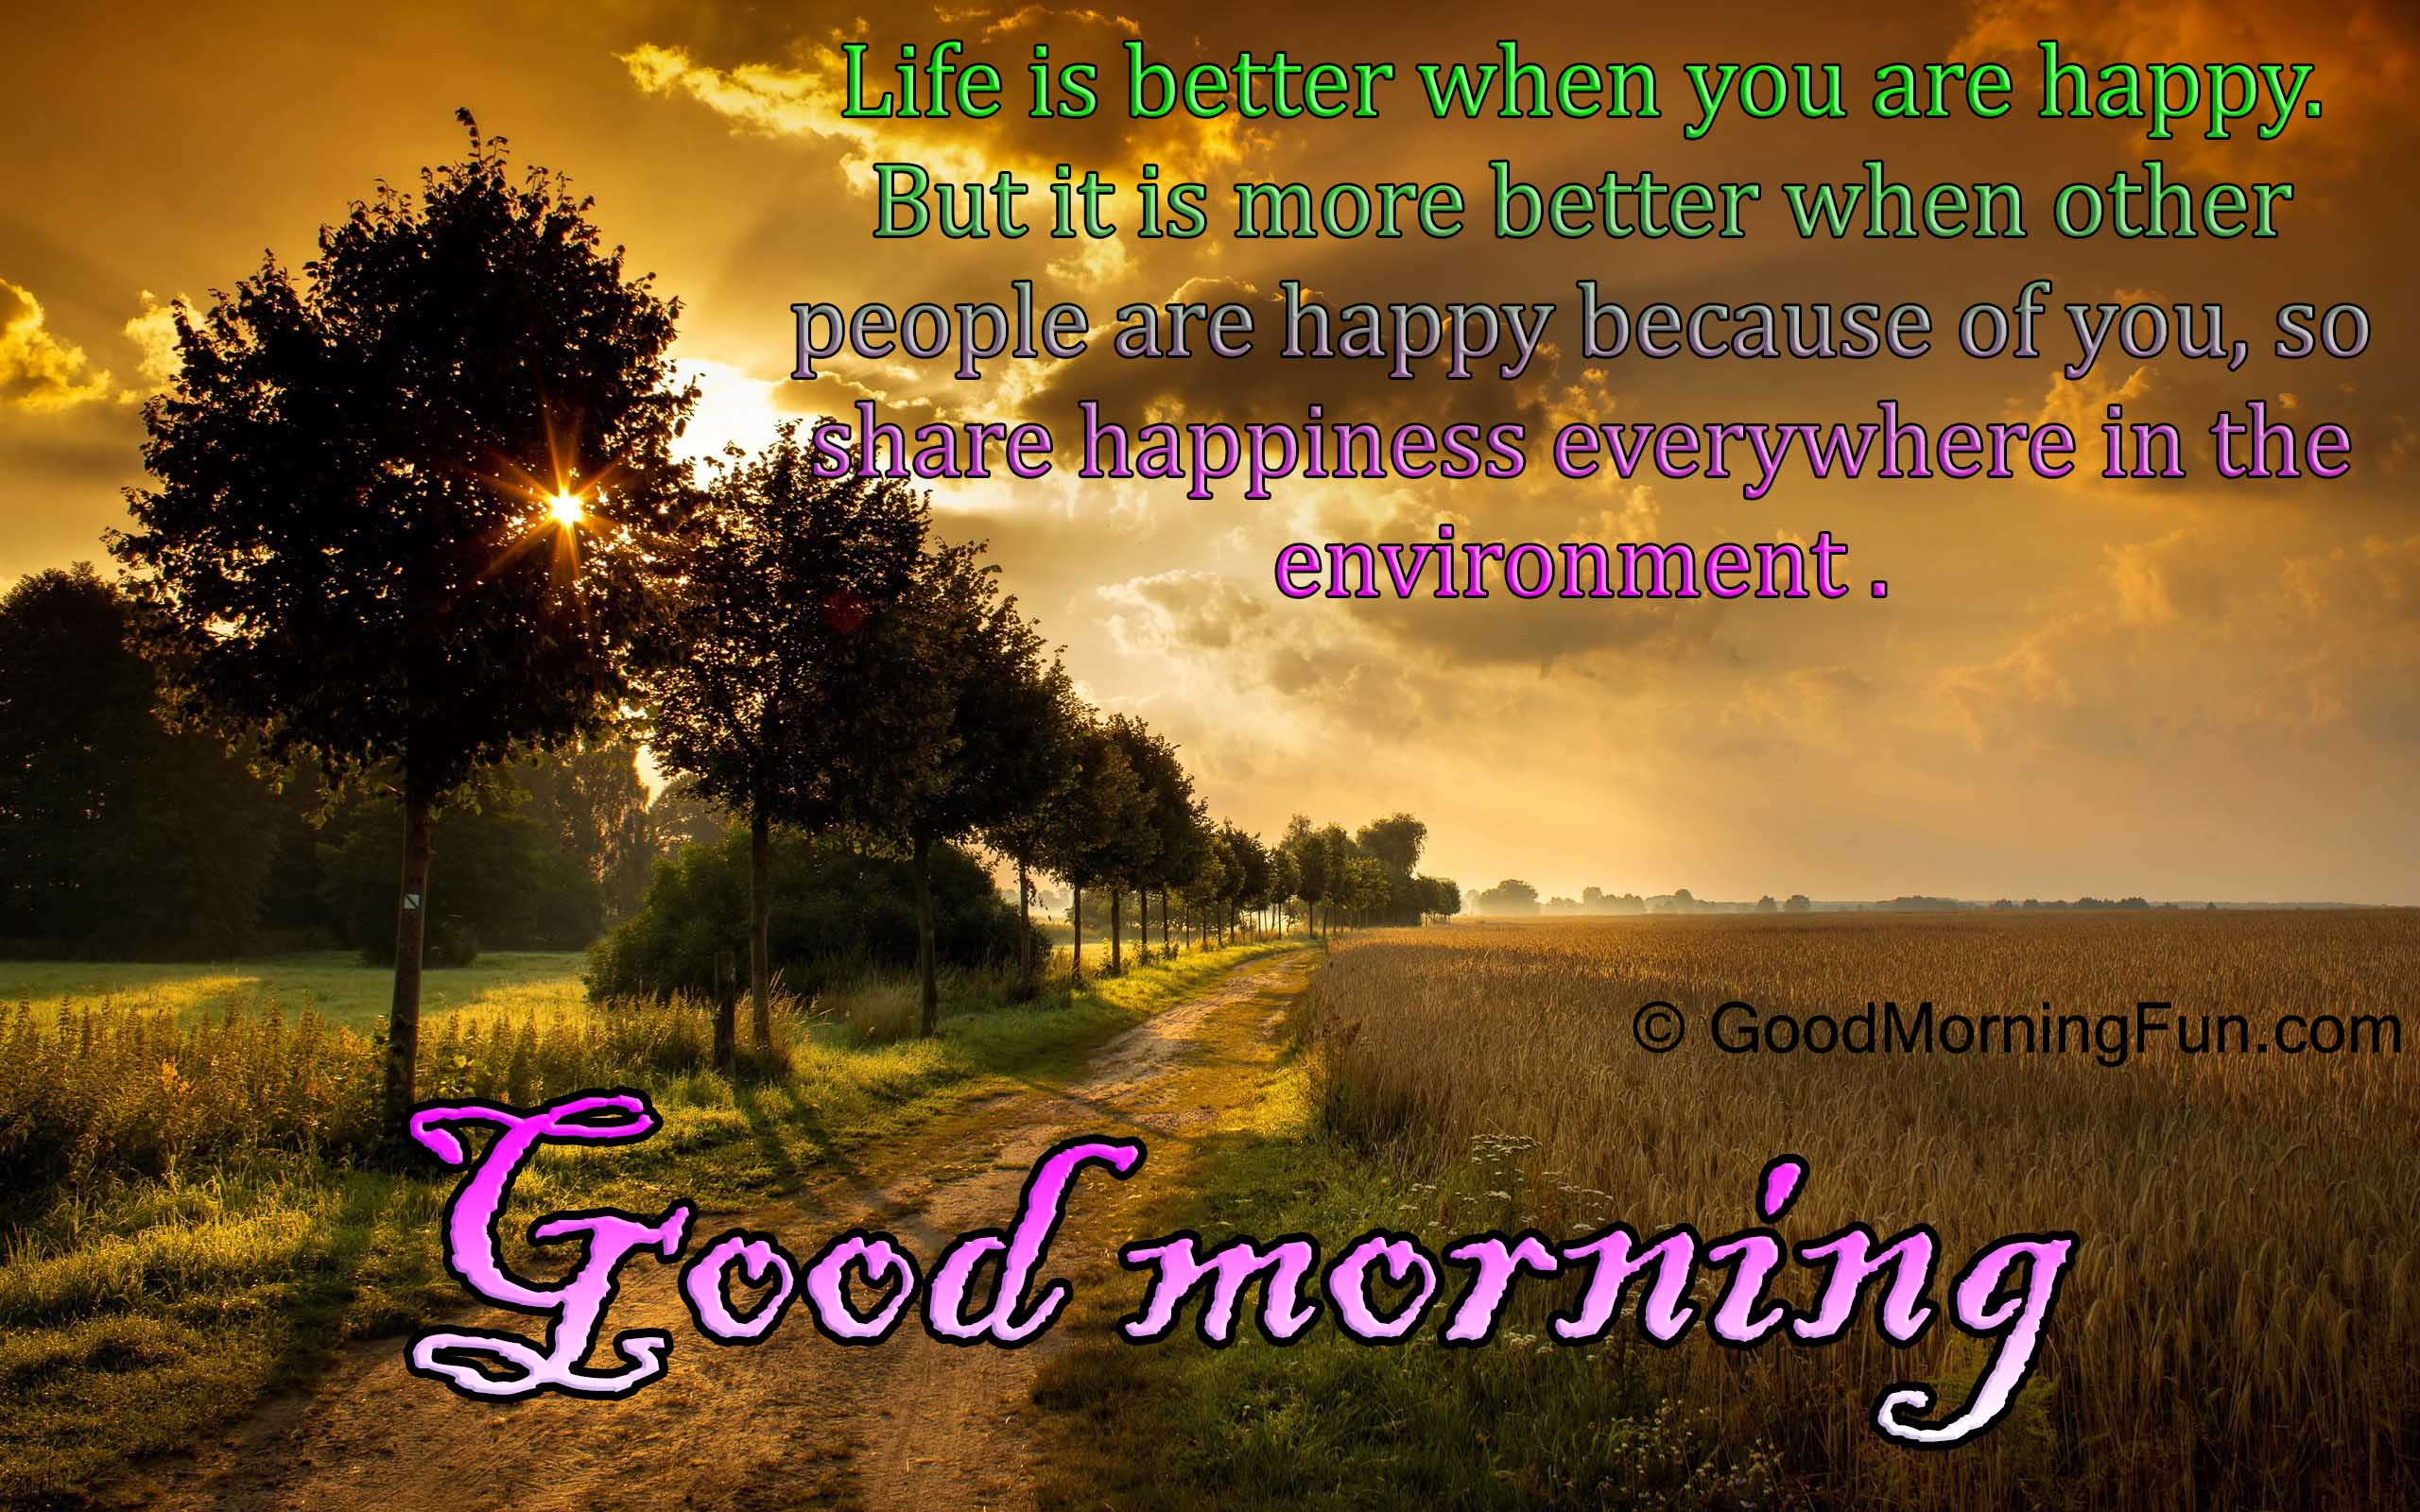 Great Good Morning Quotes On Life Happy Happyness Environment